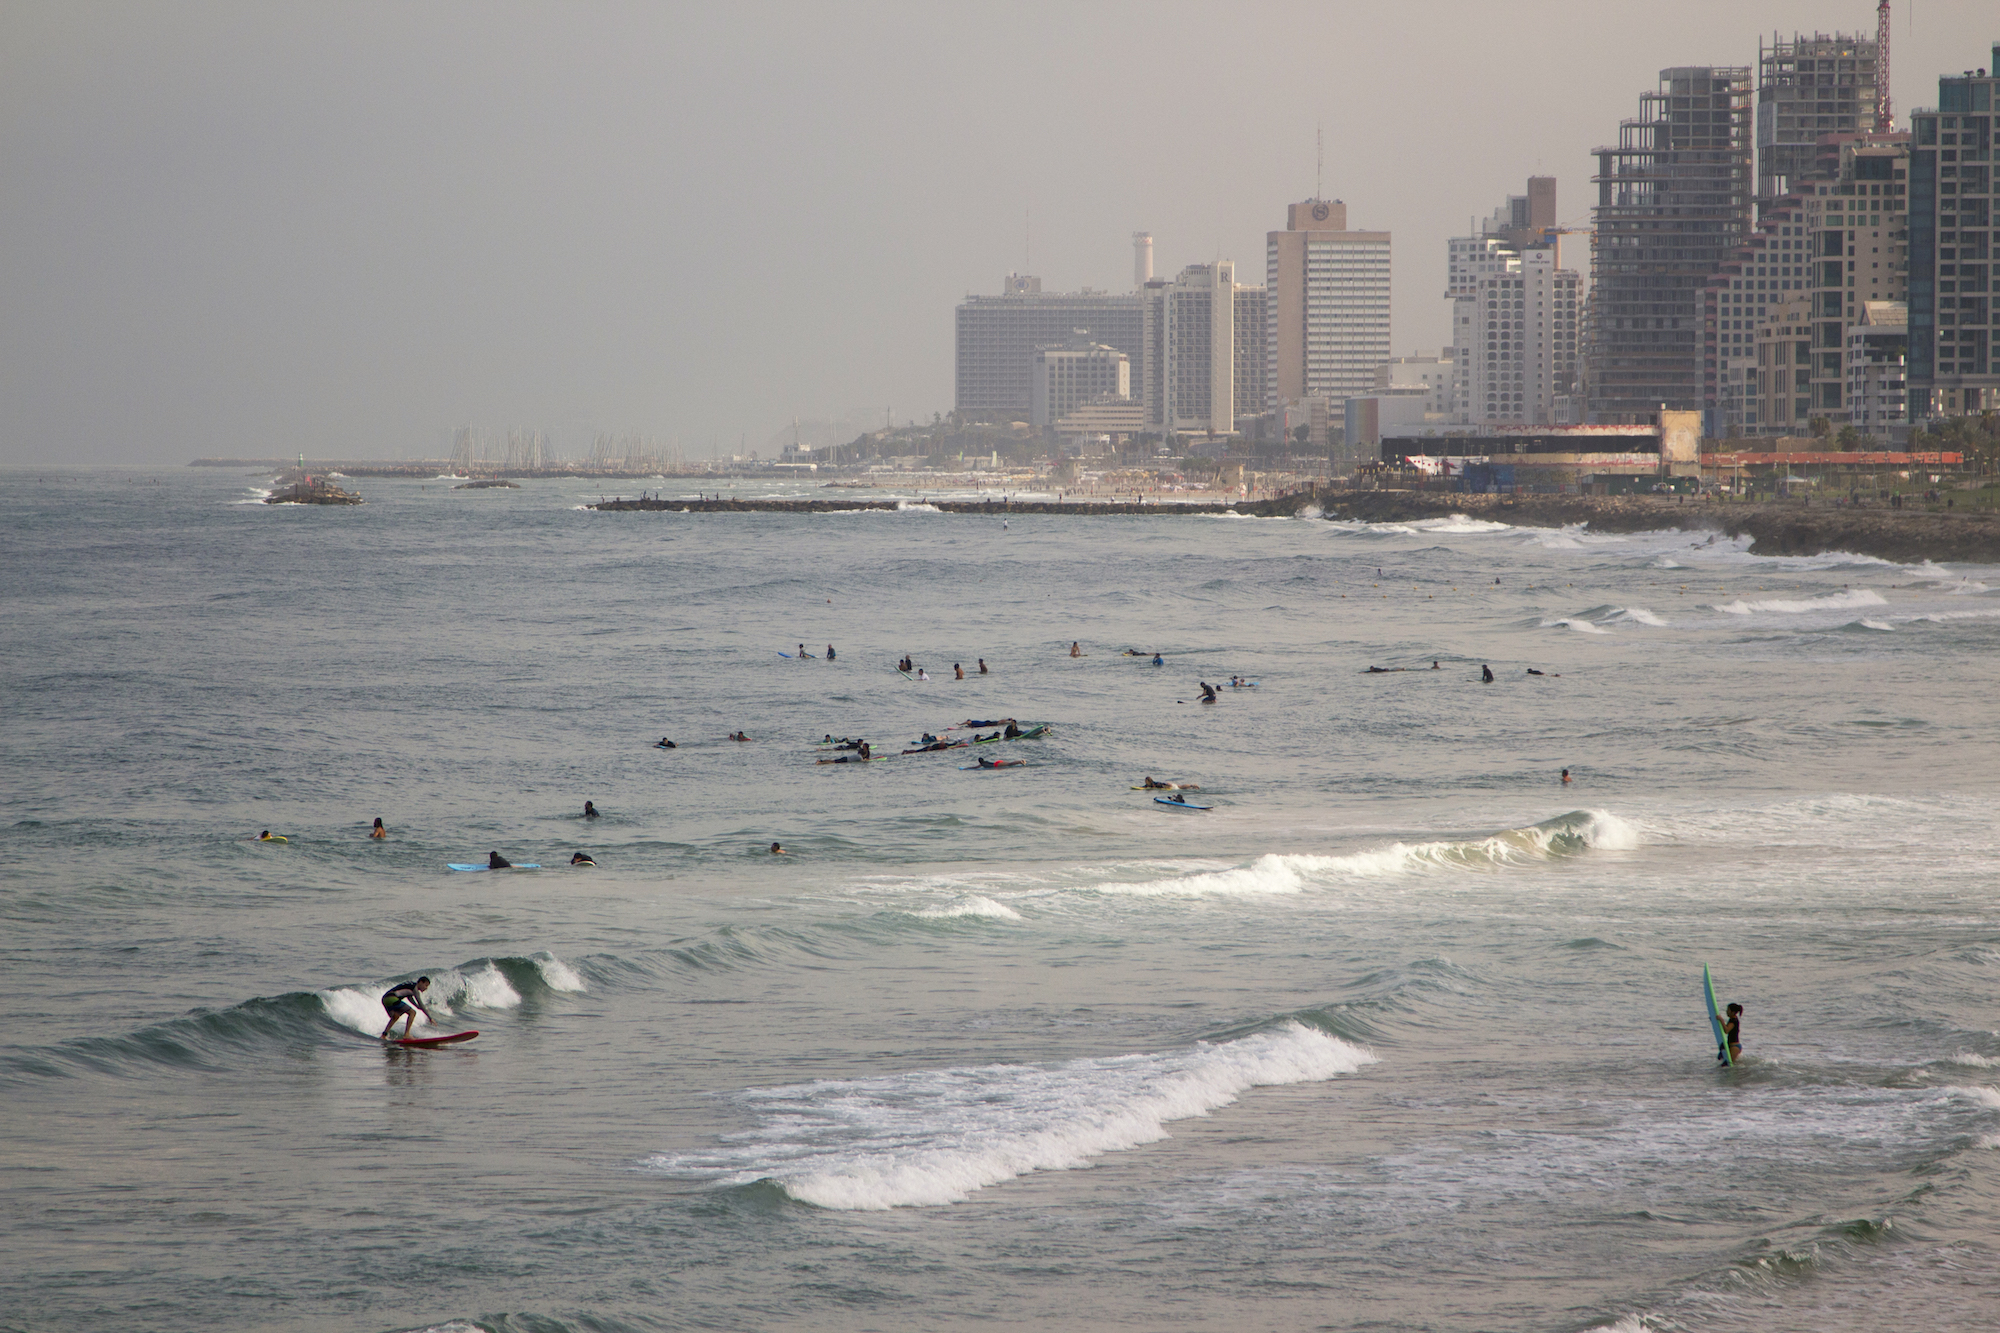 Early morning surf in Tel Aviv, Israel. See more #travel photography by Geena Matuson @geenamatuson #thegirlmirage at thegirlmirage.com.